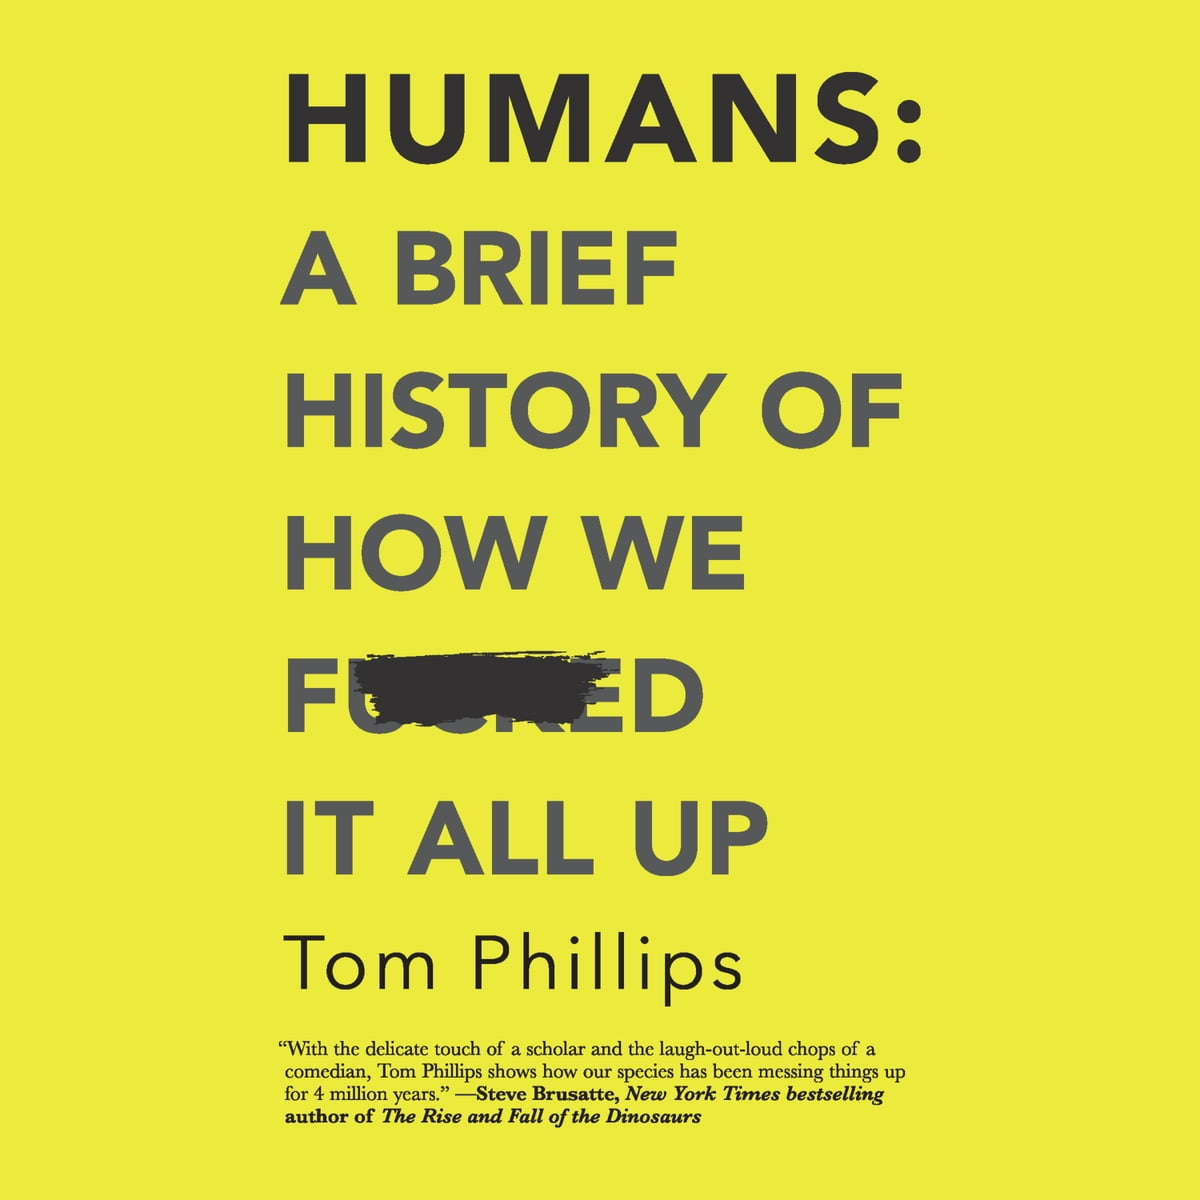 Humans: A Brief History of How We F*cked It All Up audiobook by Tom  Phillips - Rakuten Kobo